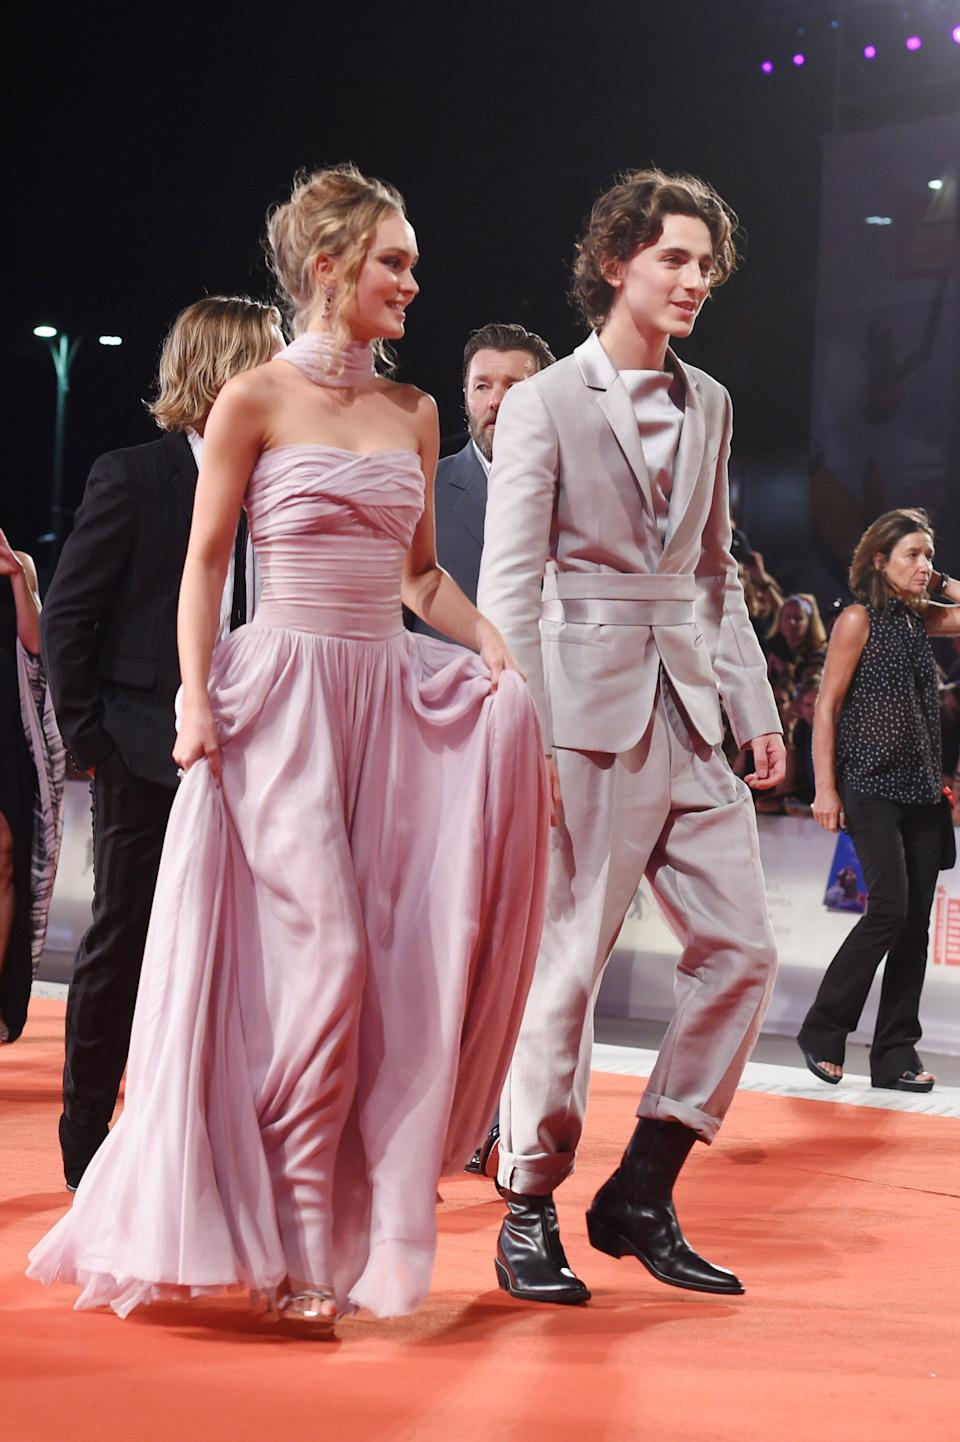 Lily-Rose Depp and Timothee Chalamet attend a screening of The King at the Venice Film Festival (Photo: Stefania D'Alessandro via Getty Images)